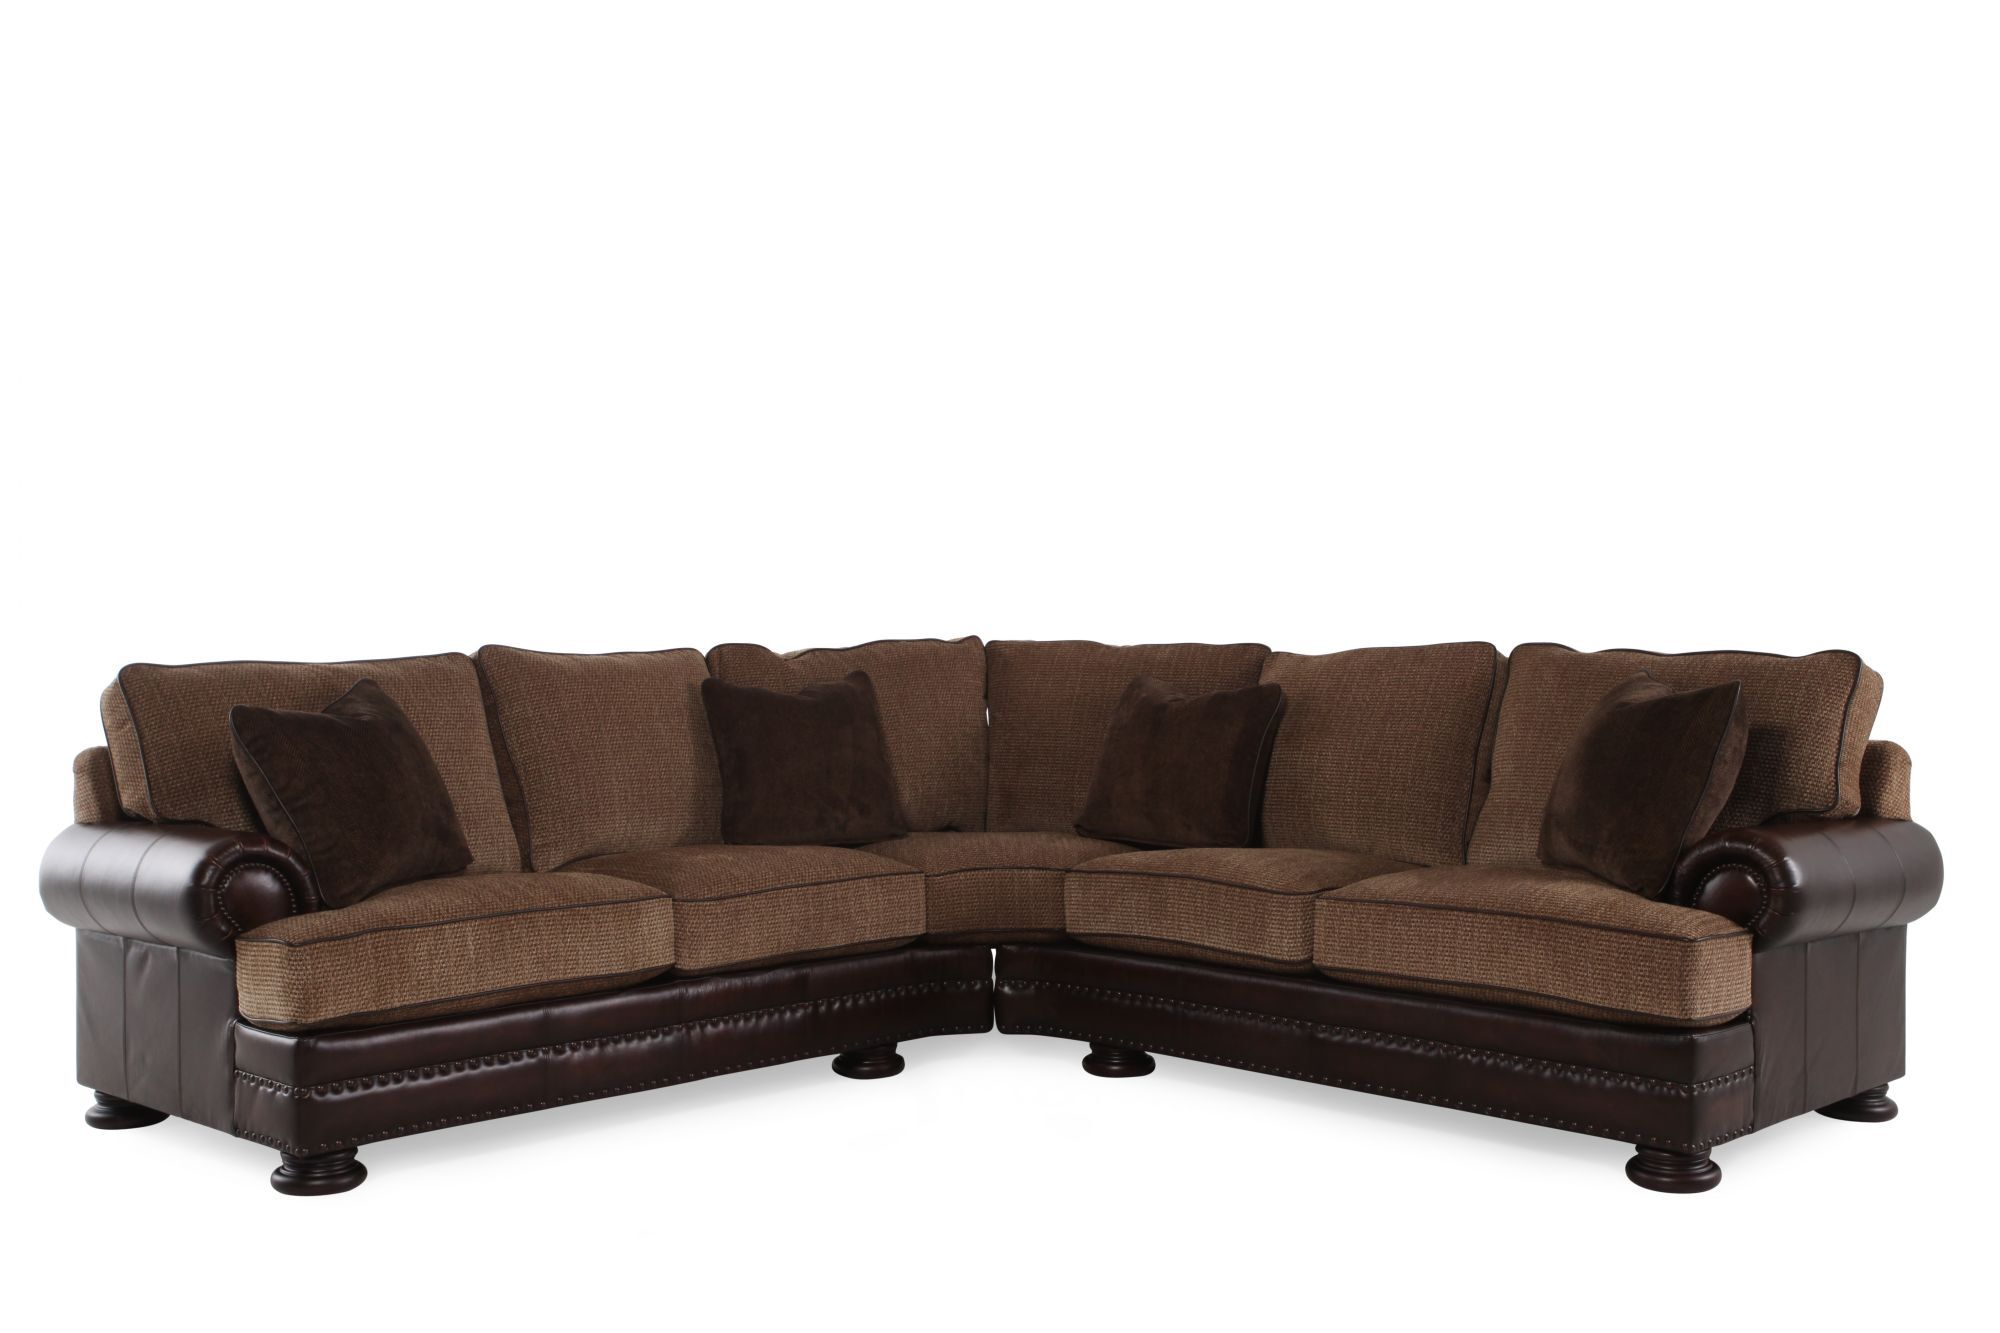 Two Piece Leather 204 Nailhead Trimmed